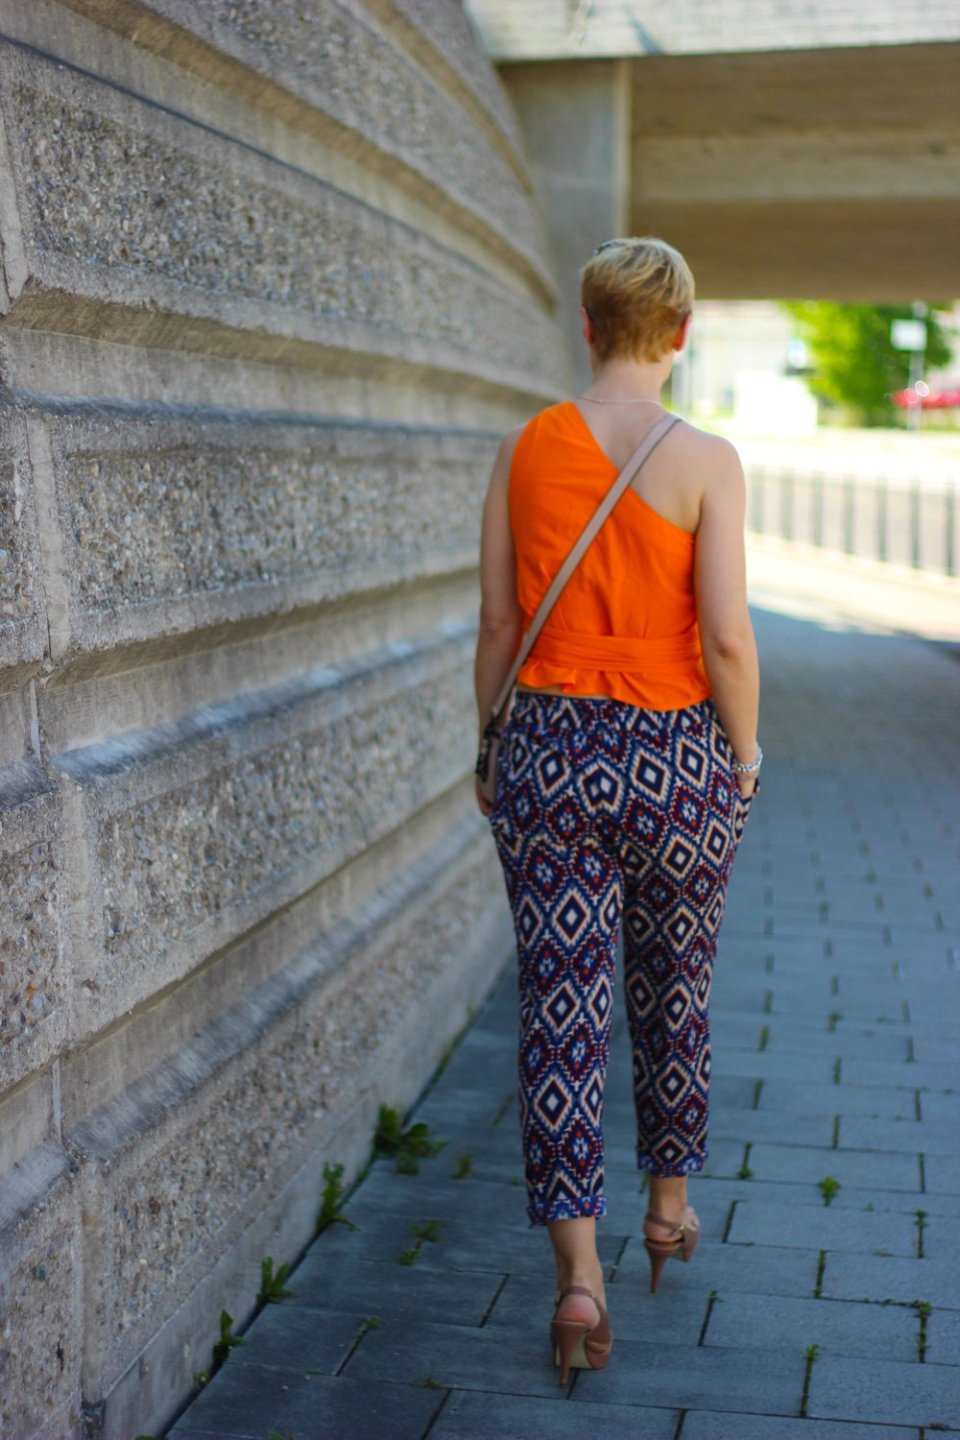 Conny Doll Lifestyle: Wickeltop in Orange, Ethno-Muster, Sommerlook, Pumps